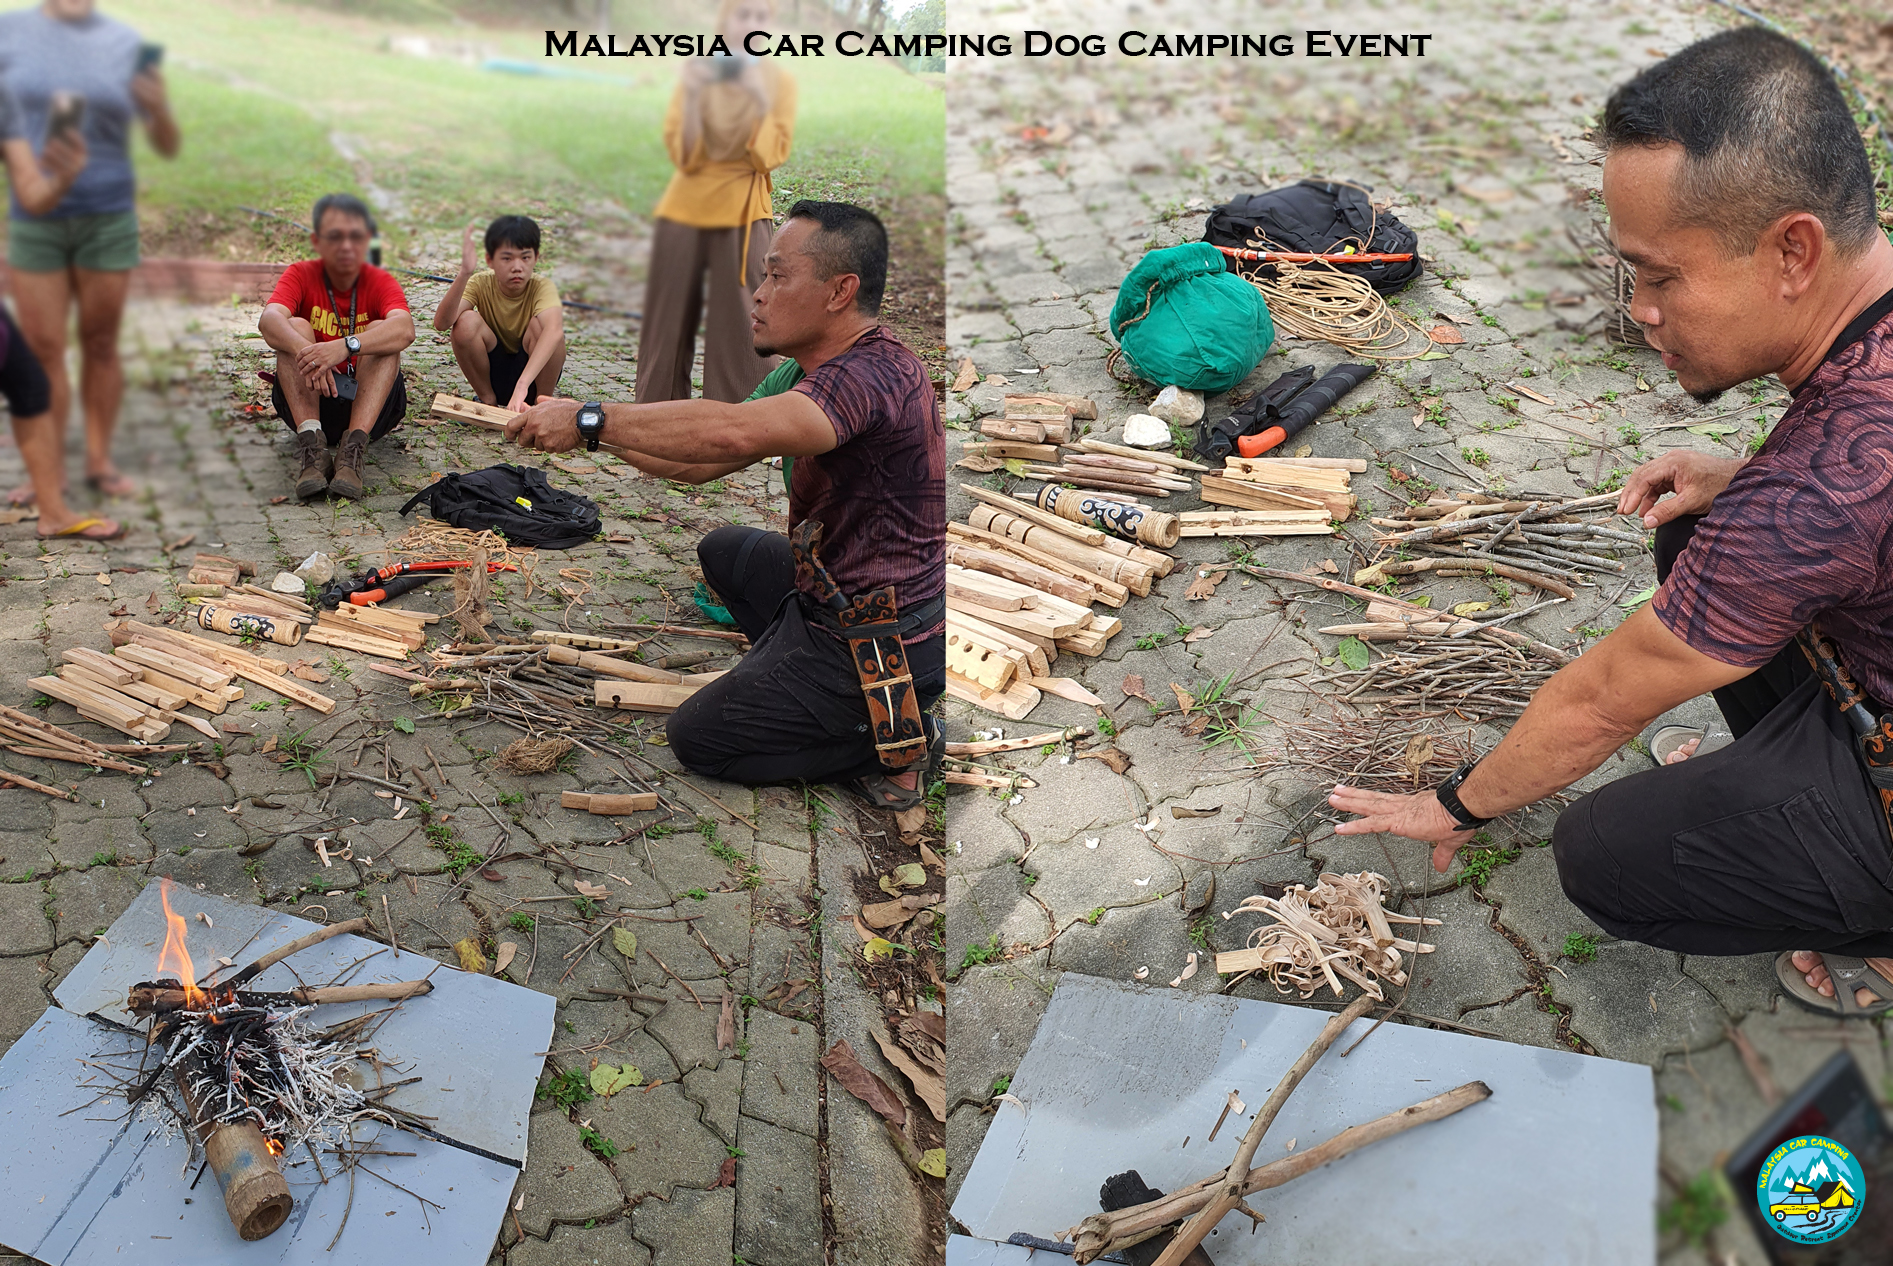 besic_start_fire_in_the_wilds_course_programme_dog_camping_event_dog_lover_selangor_camping_site_malaysia_car_camping_private_event_organizer-2